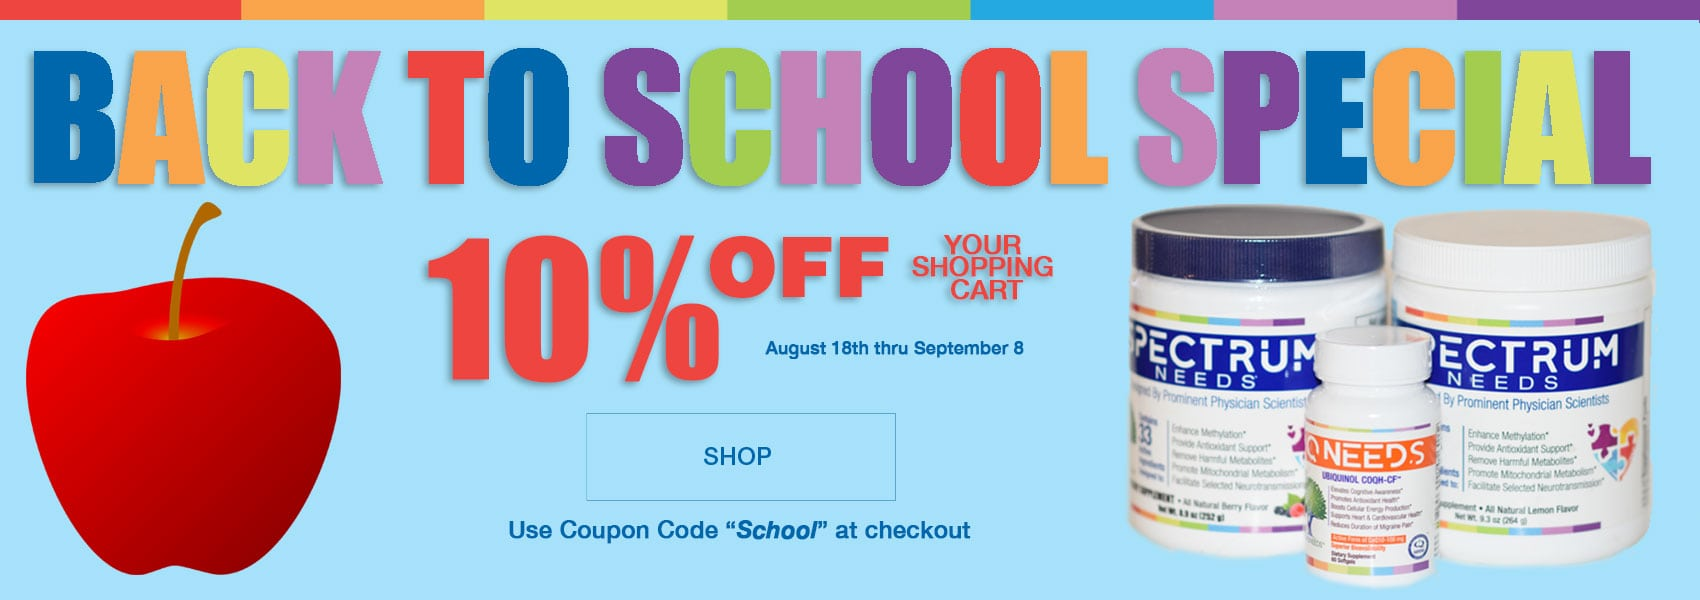 19% OFF BACK TO SCHOOL